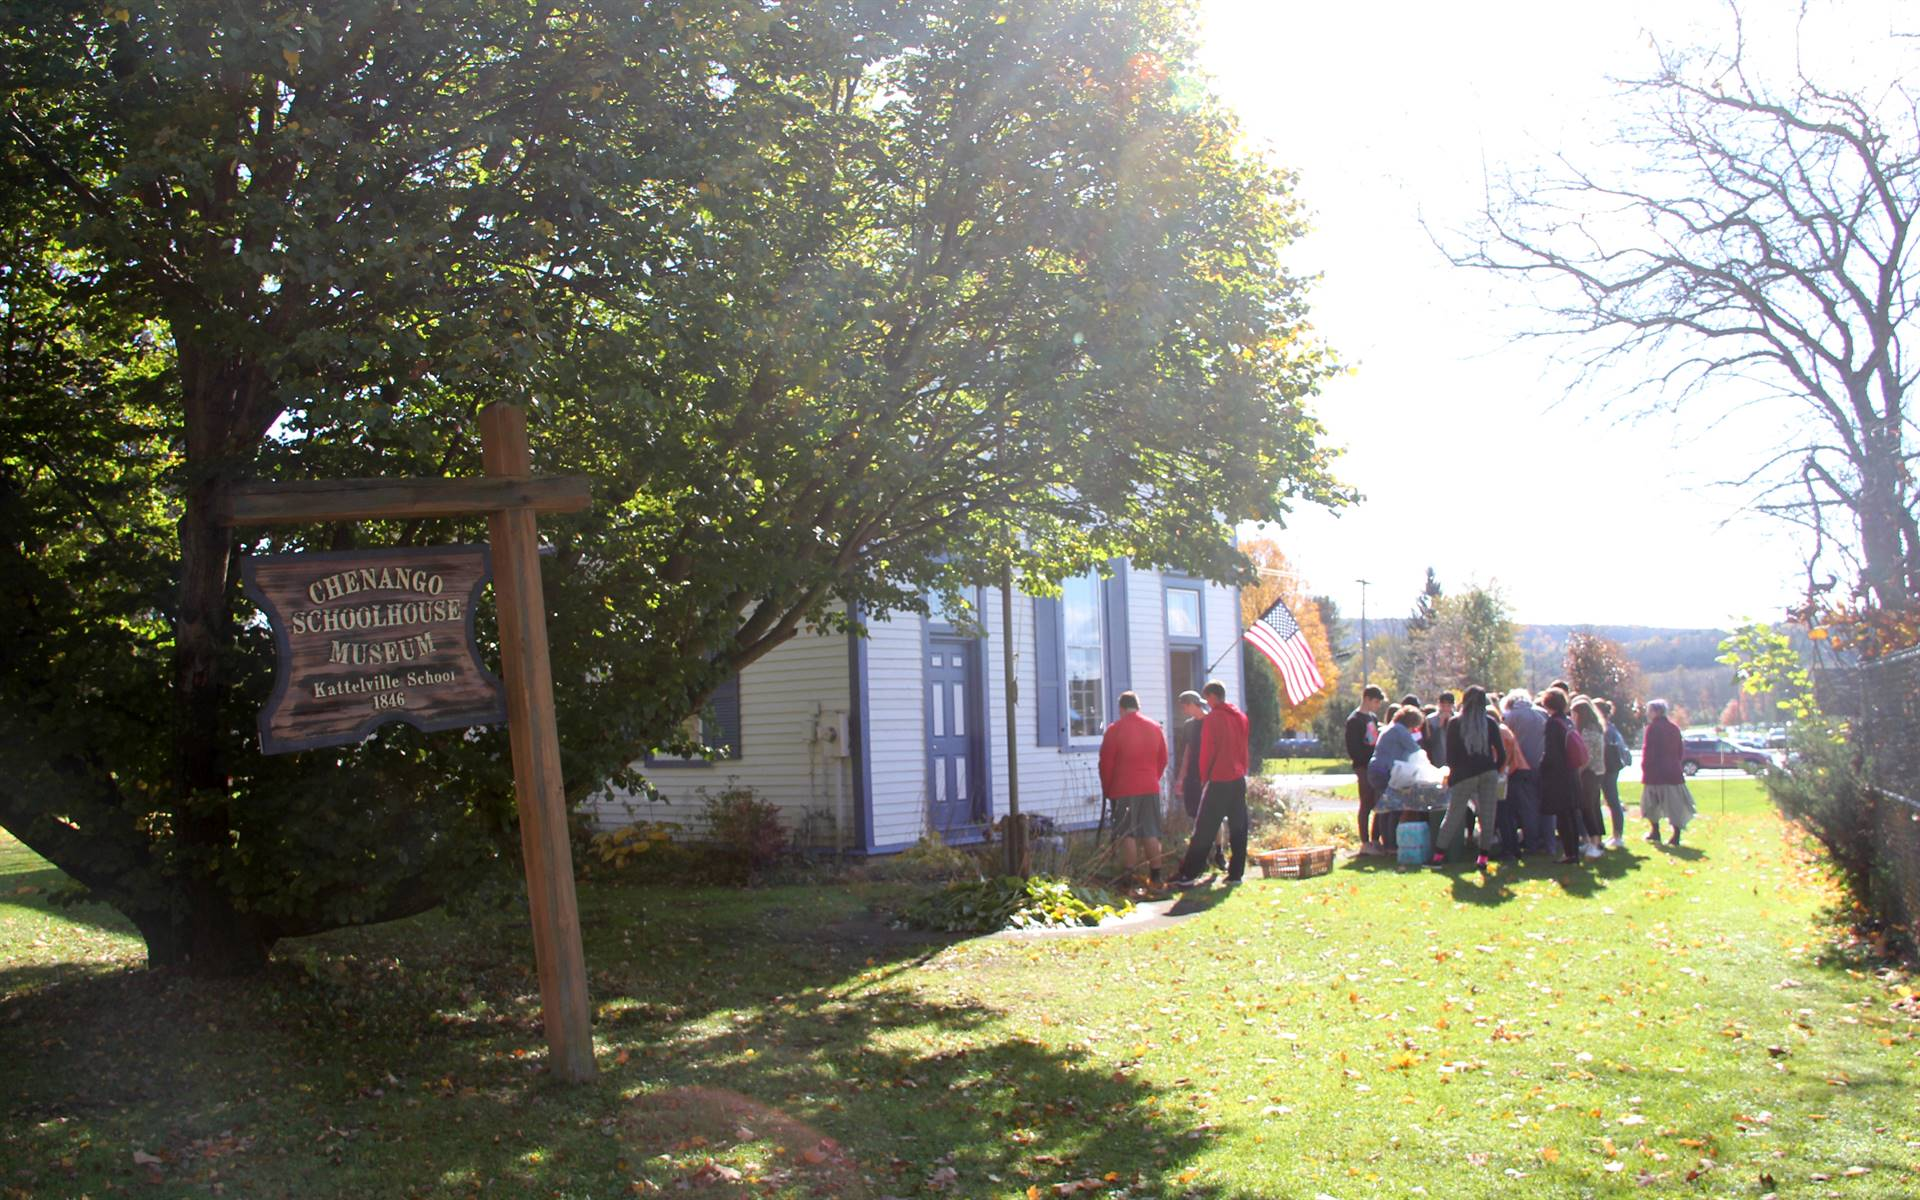 students outside of chenango schoolhouse museum